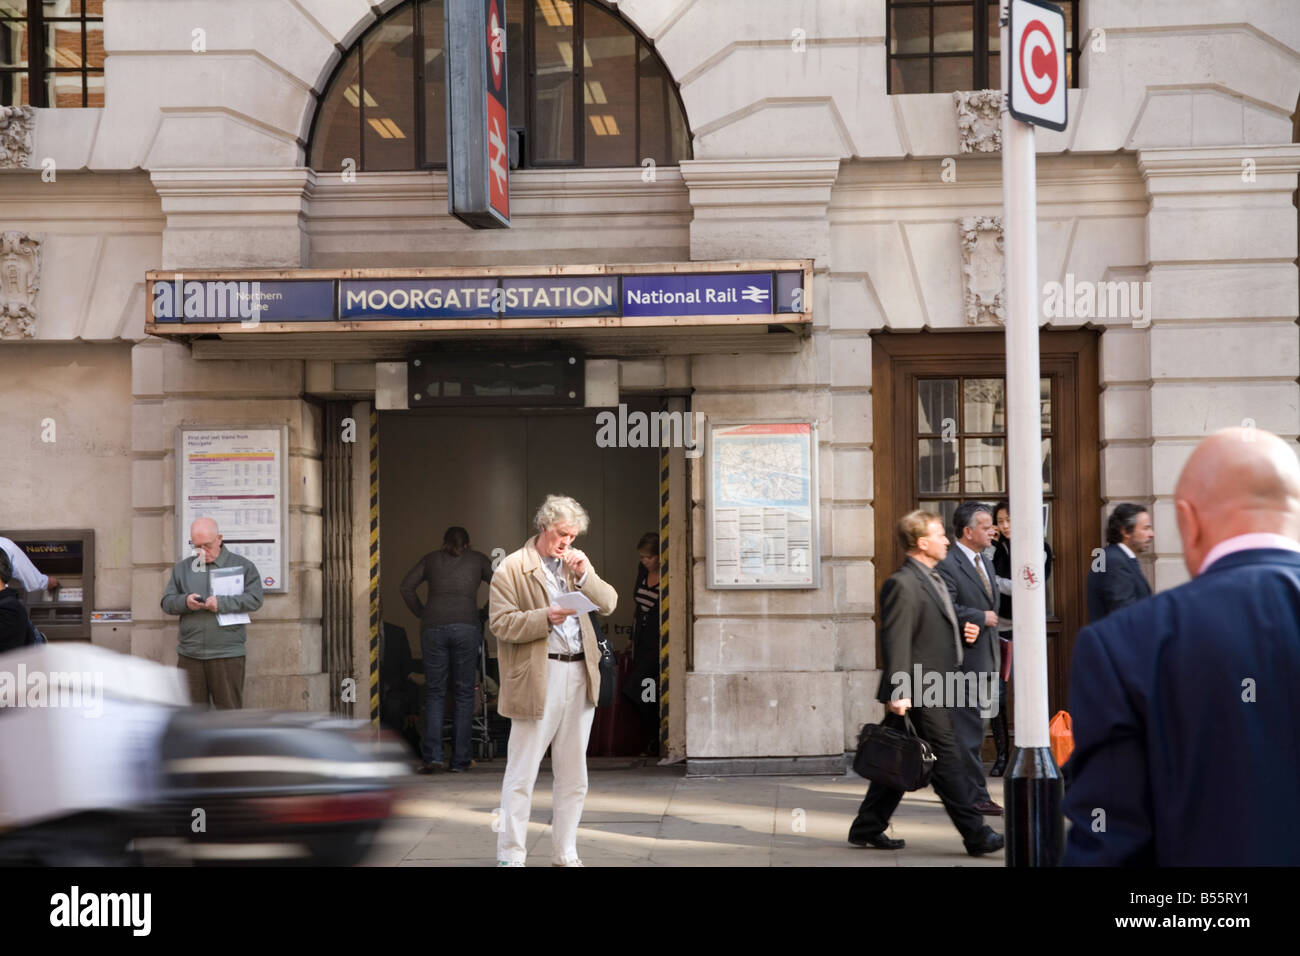 Moorgate Tube Station London - Stock Image